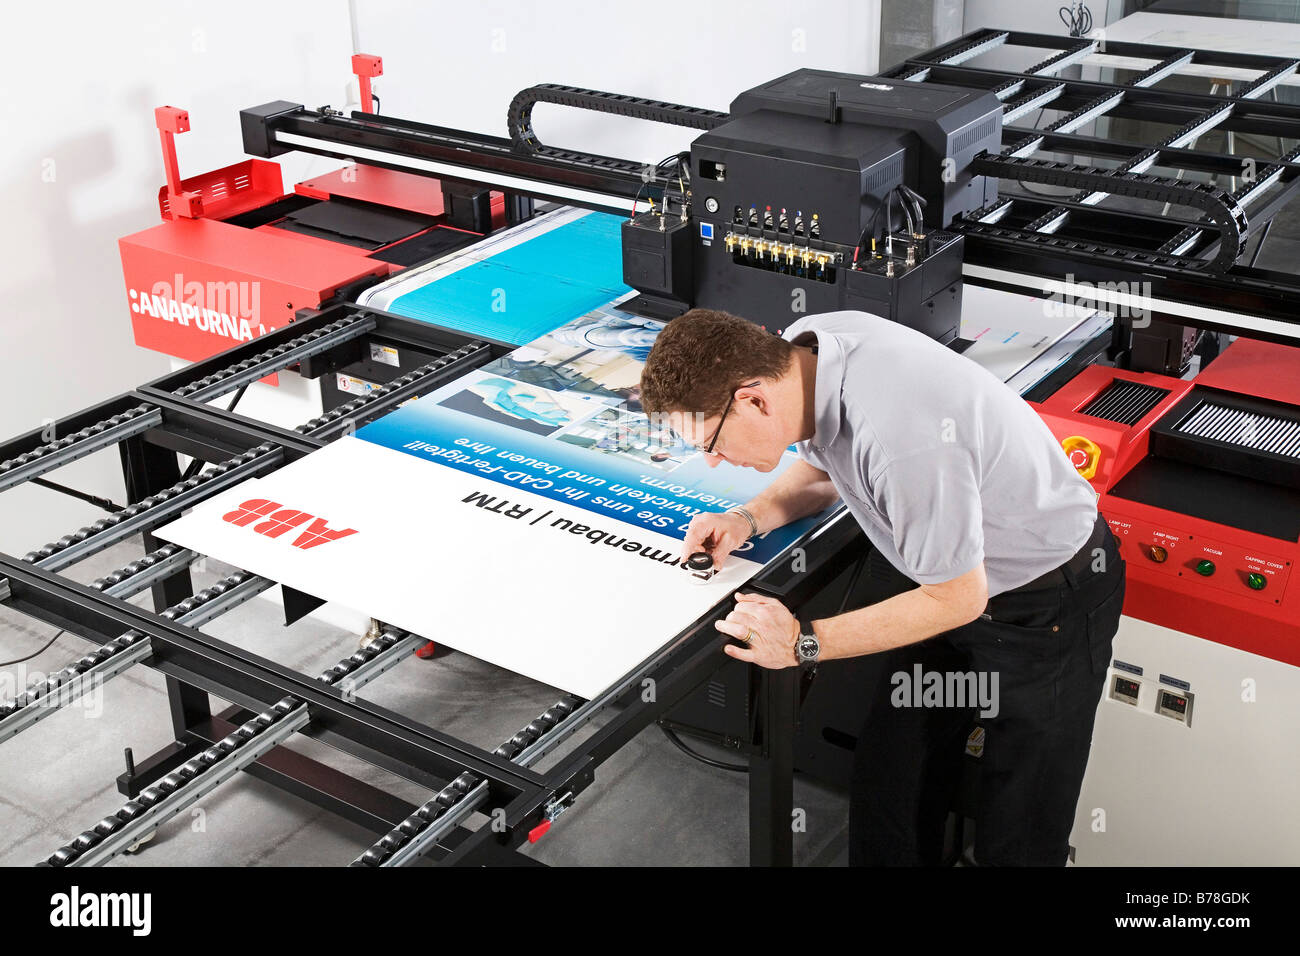 Printer for the Expomobilia company which constructs exhibition booths during quality control and checking a printed - Stock Image